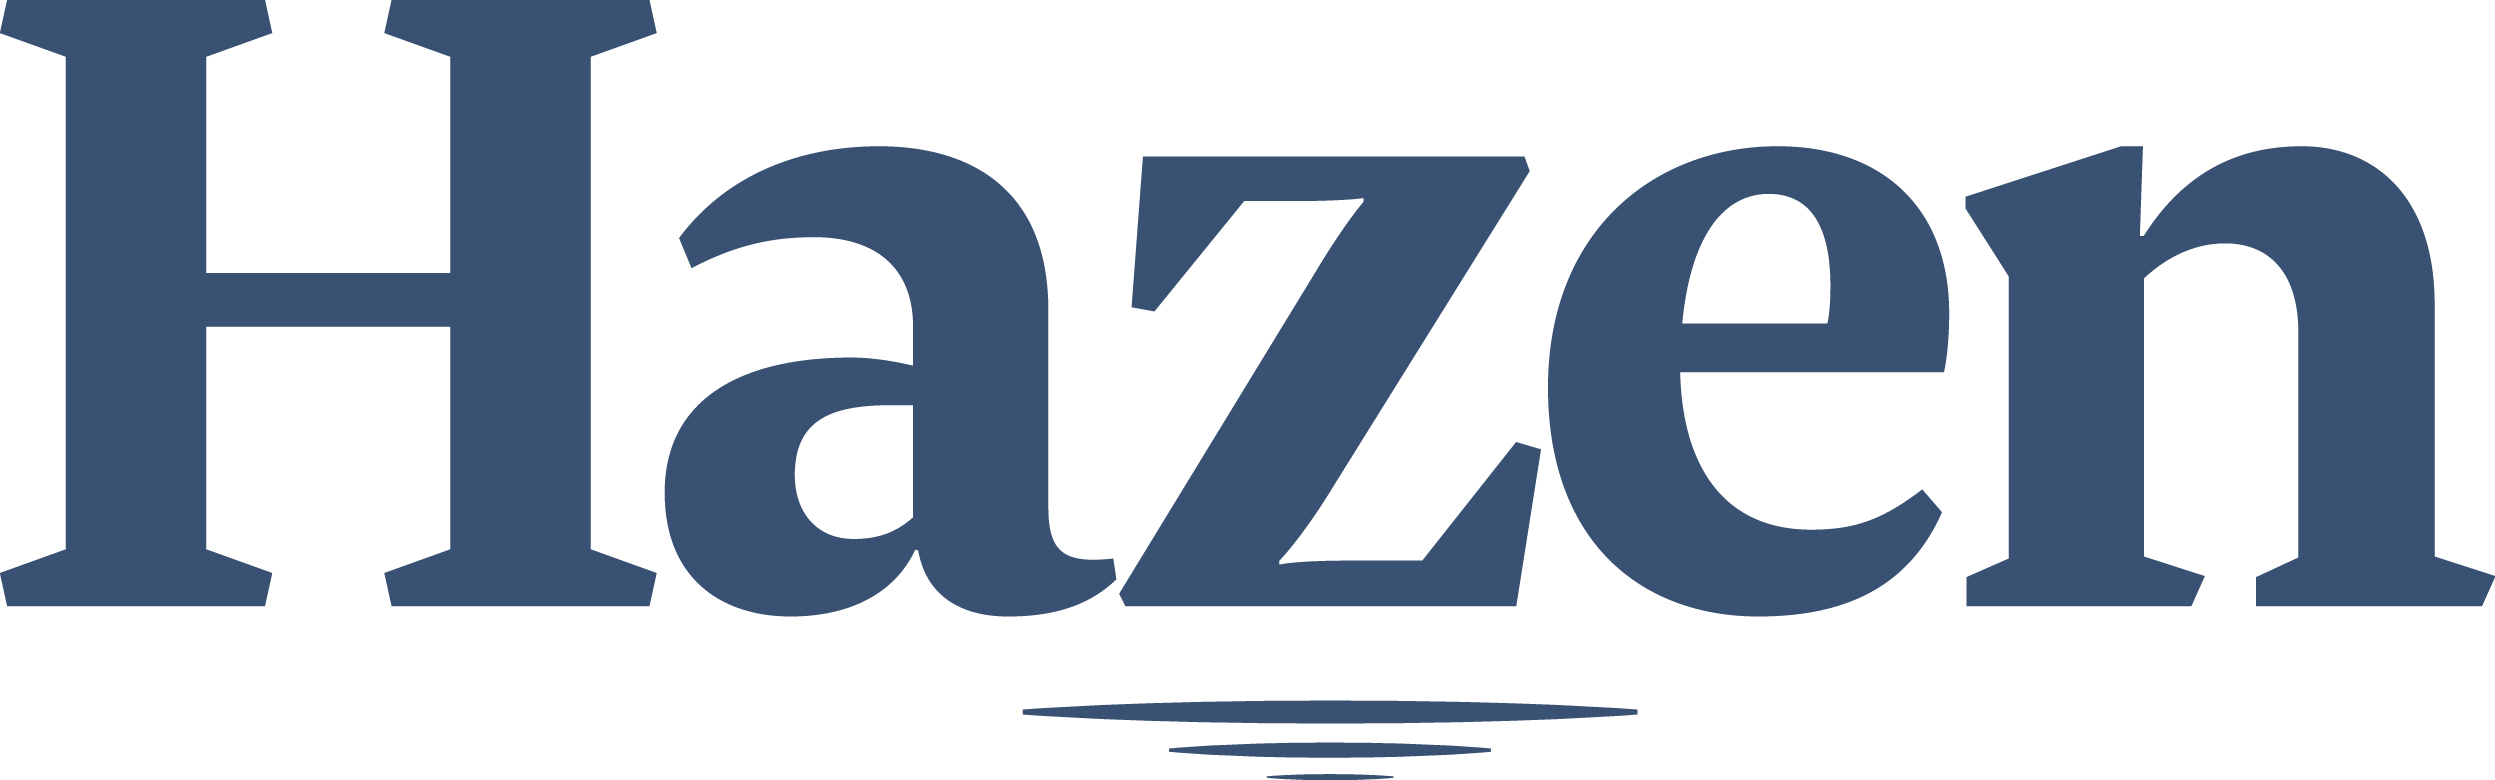 Hazen and Sawyer, an engineering firm that helps clients provide safe drinking water to their customers, and control water pollution and its effects on the environment.